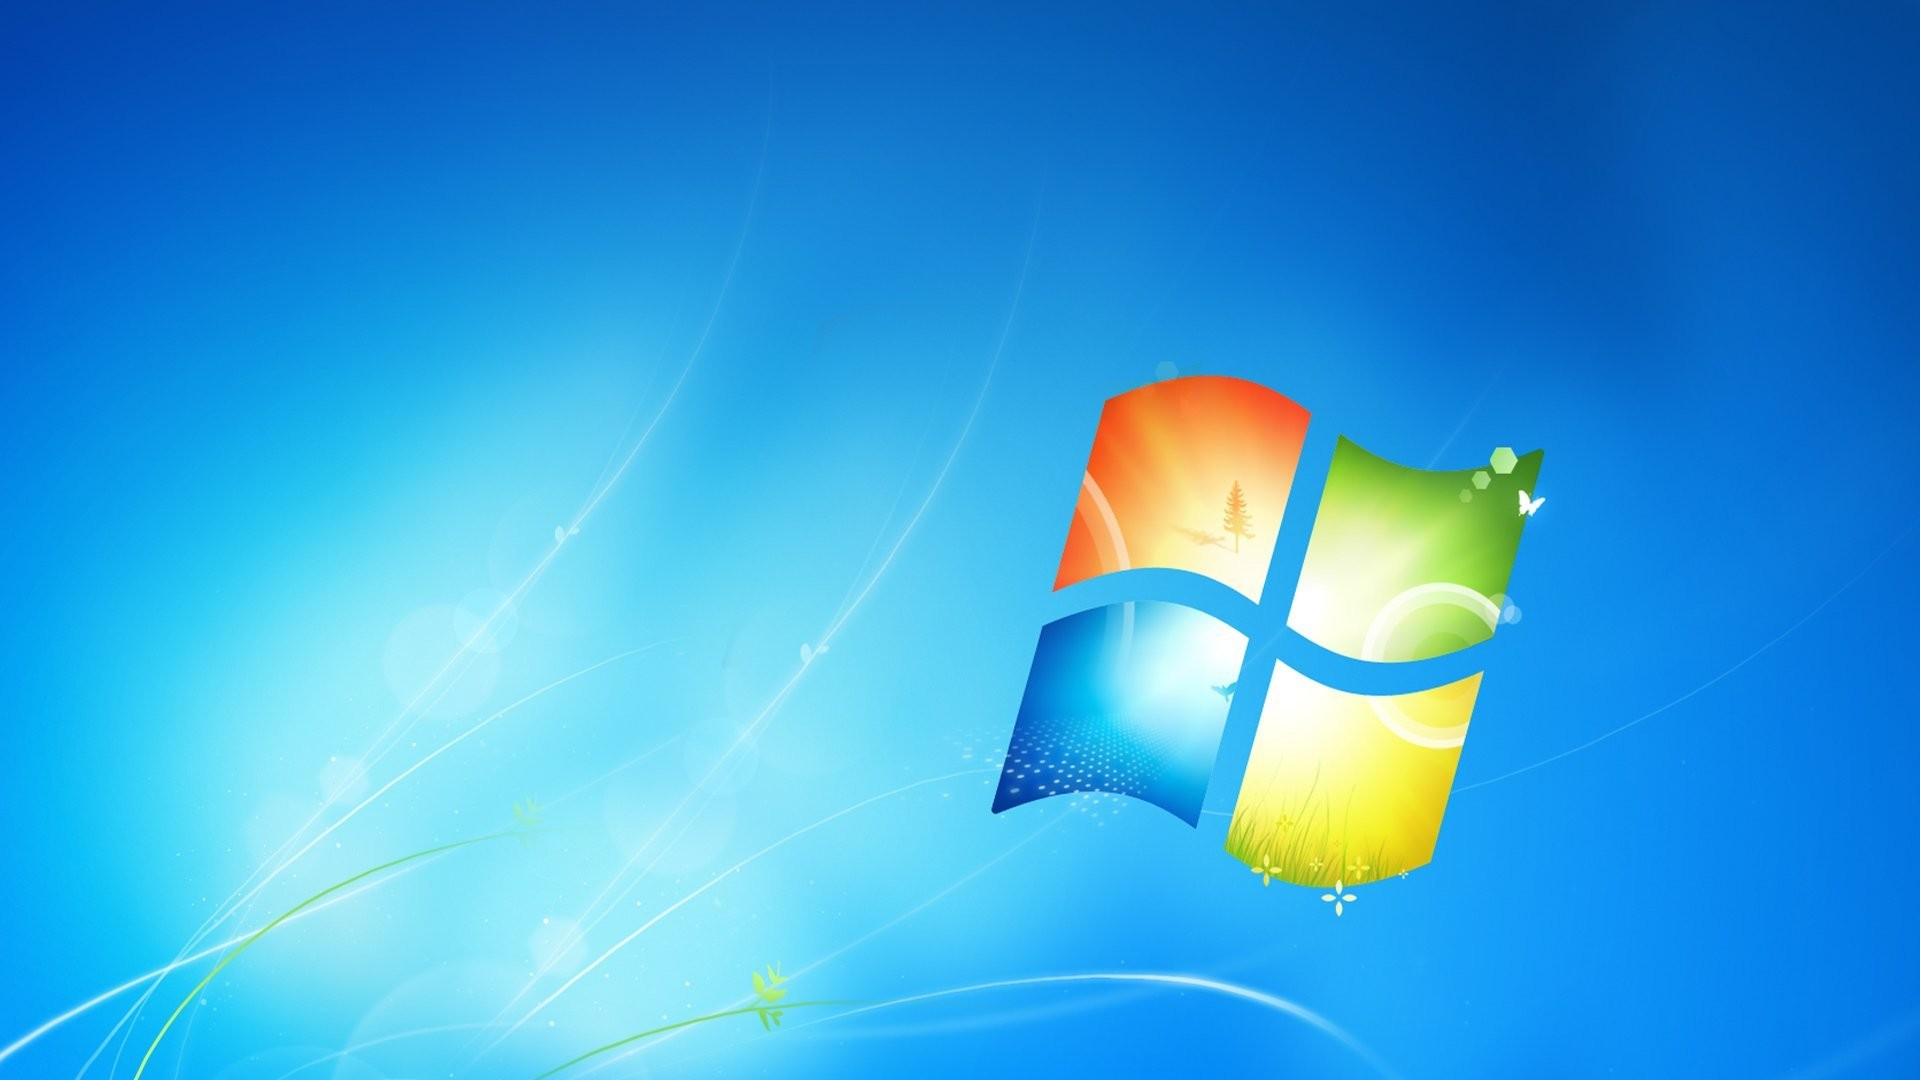 Windows 7 Original Backgrounds (71 Wallpapers)